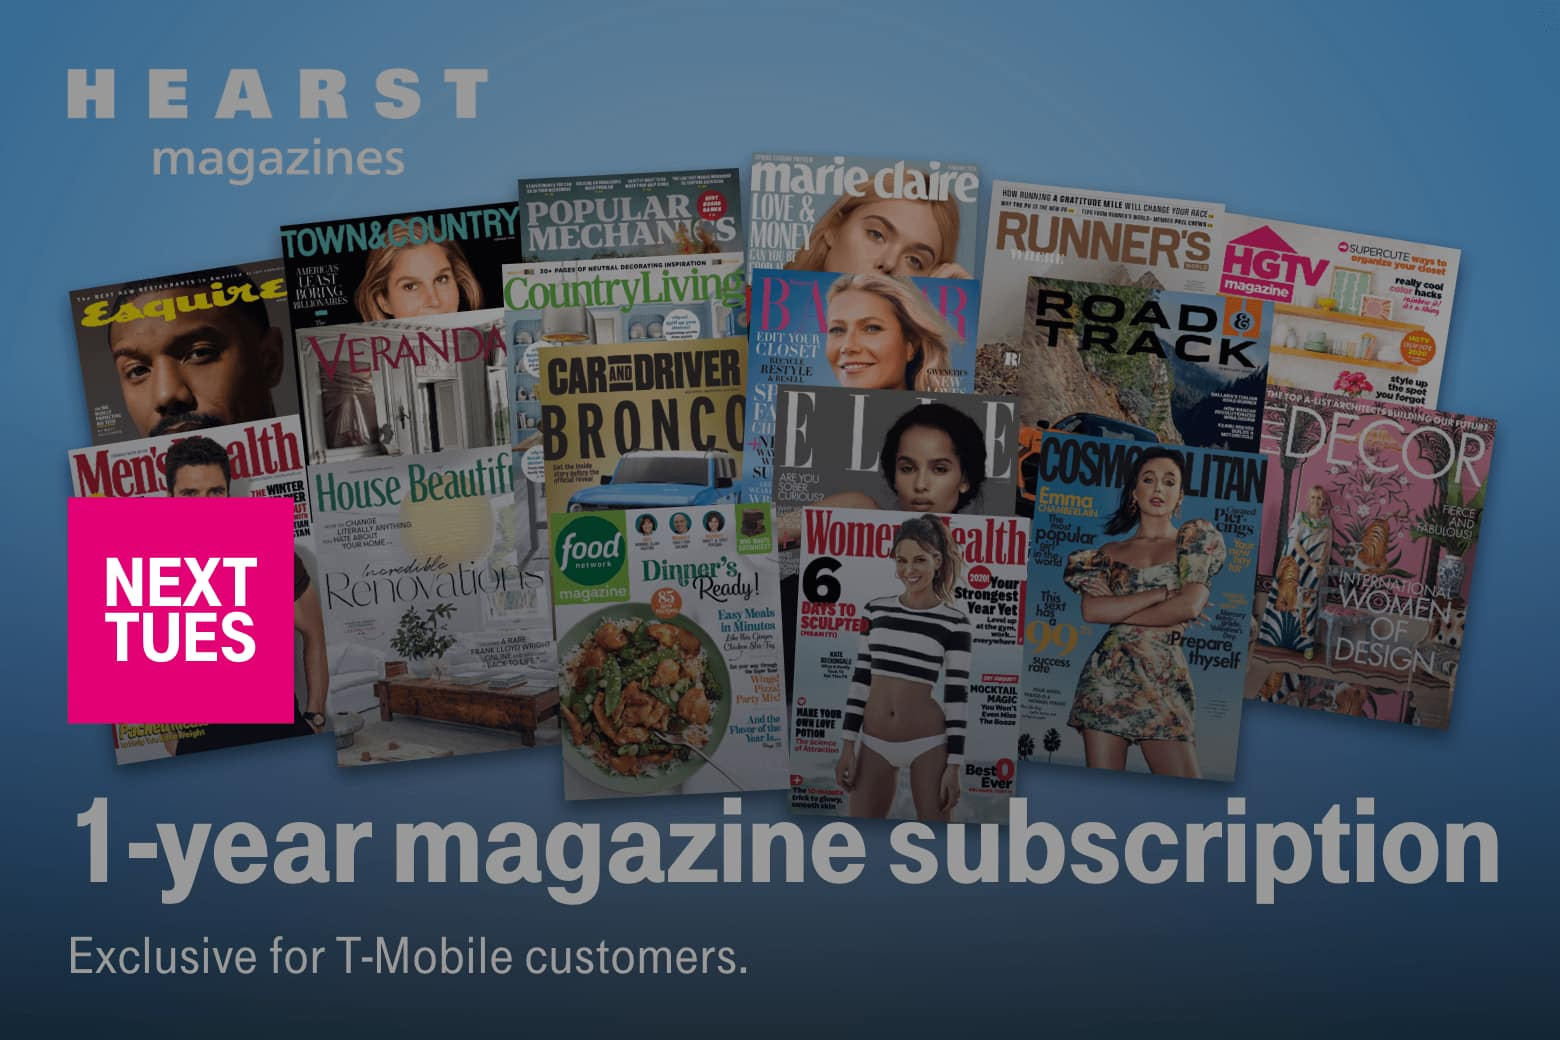 T-Mobile Customers 03/31: Free 1 year magazine subscription